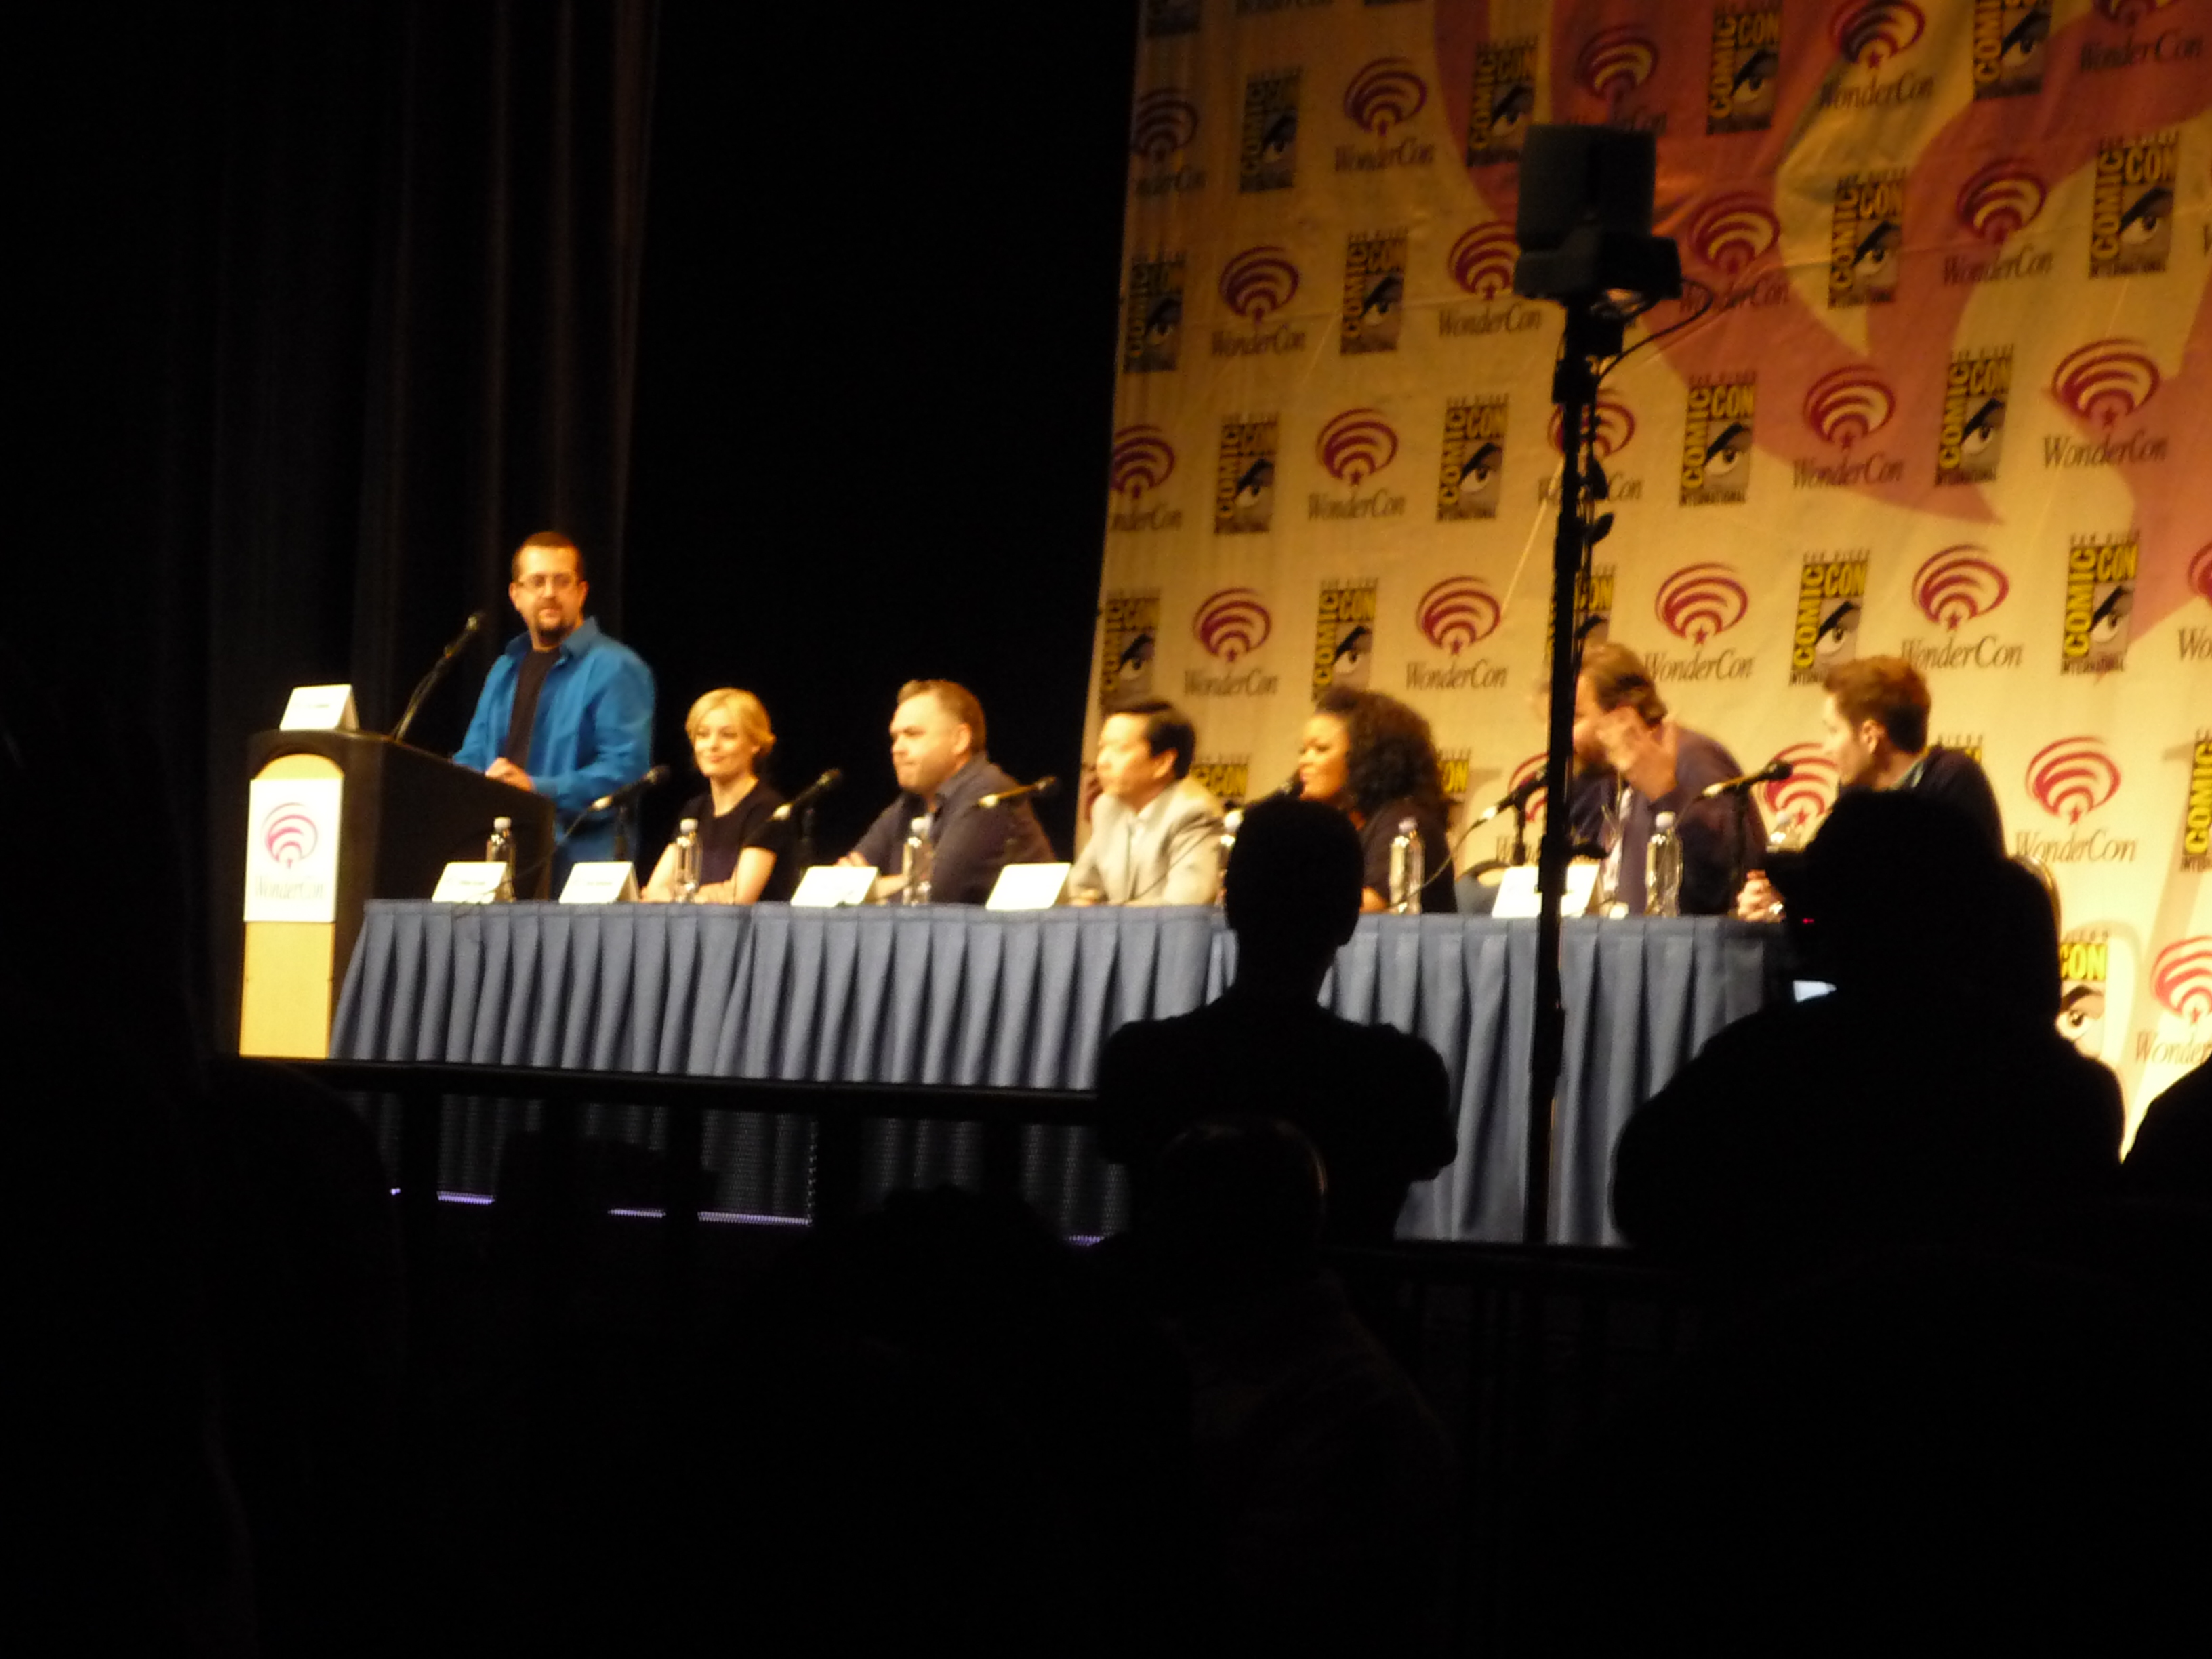 WonderCon 2012 – Community Panel / Q&A